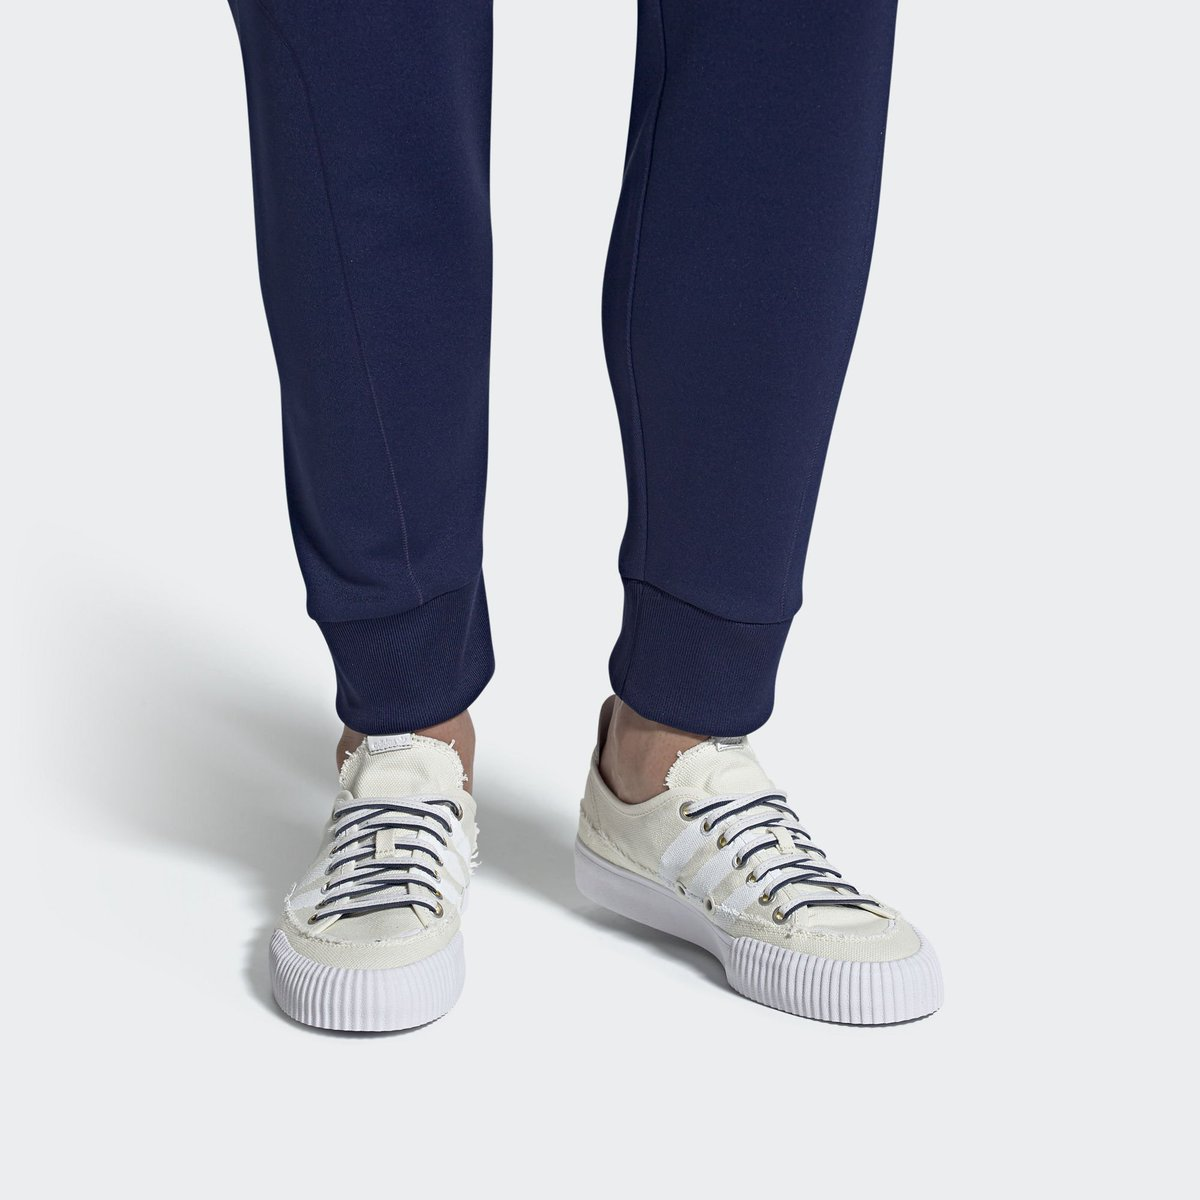 e7d11d20262f1 Sizes selling out on  adidas US.  donaldglover x  adidasoriginals. —   http   bit.ly 2LjQjh1  adpic.twitter.com l36zPfm7Vv